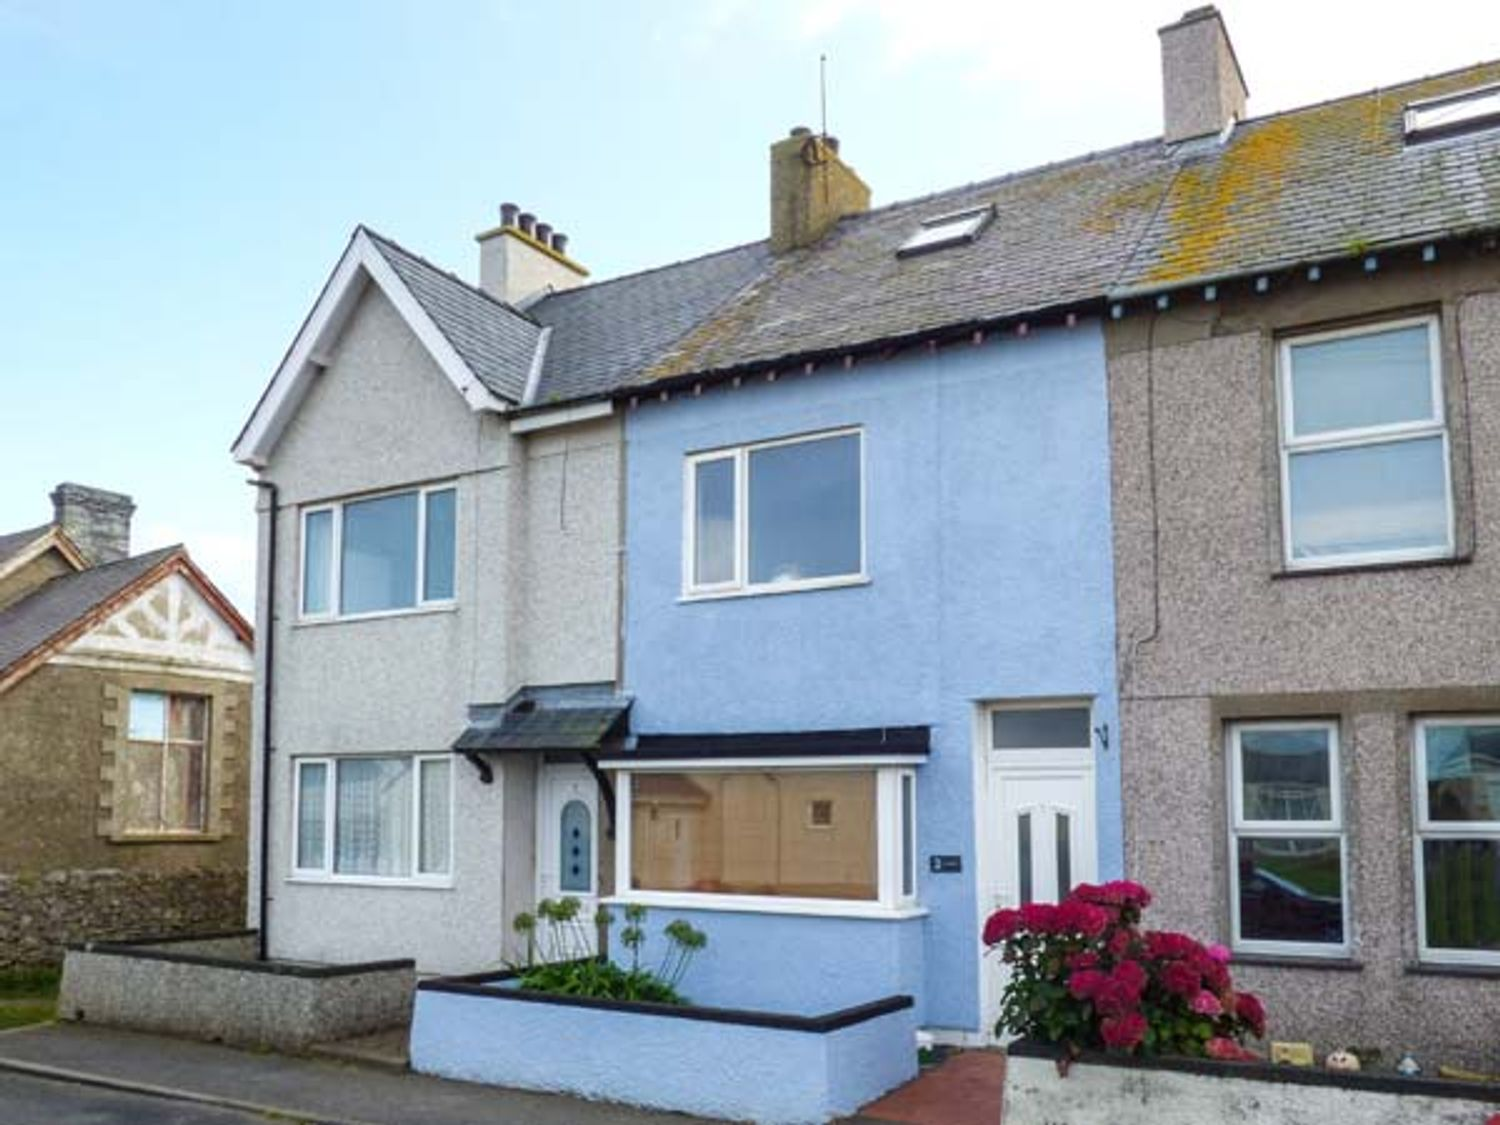 2 Tregof Terrace - Anglesey - 936705 - photo 1